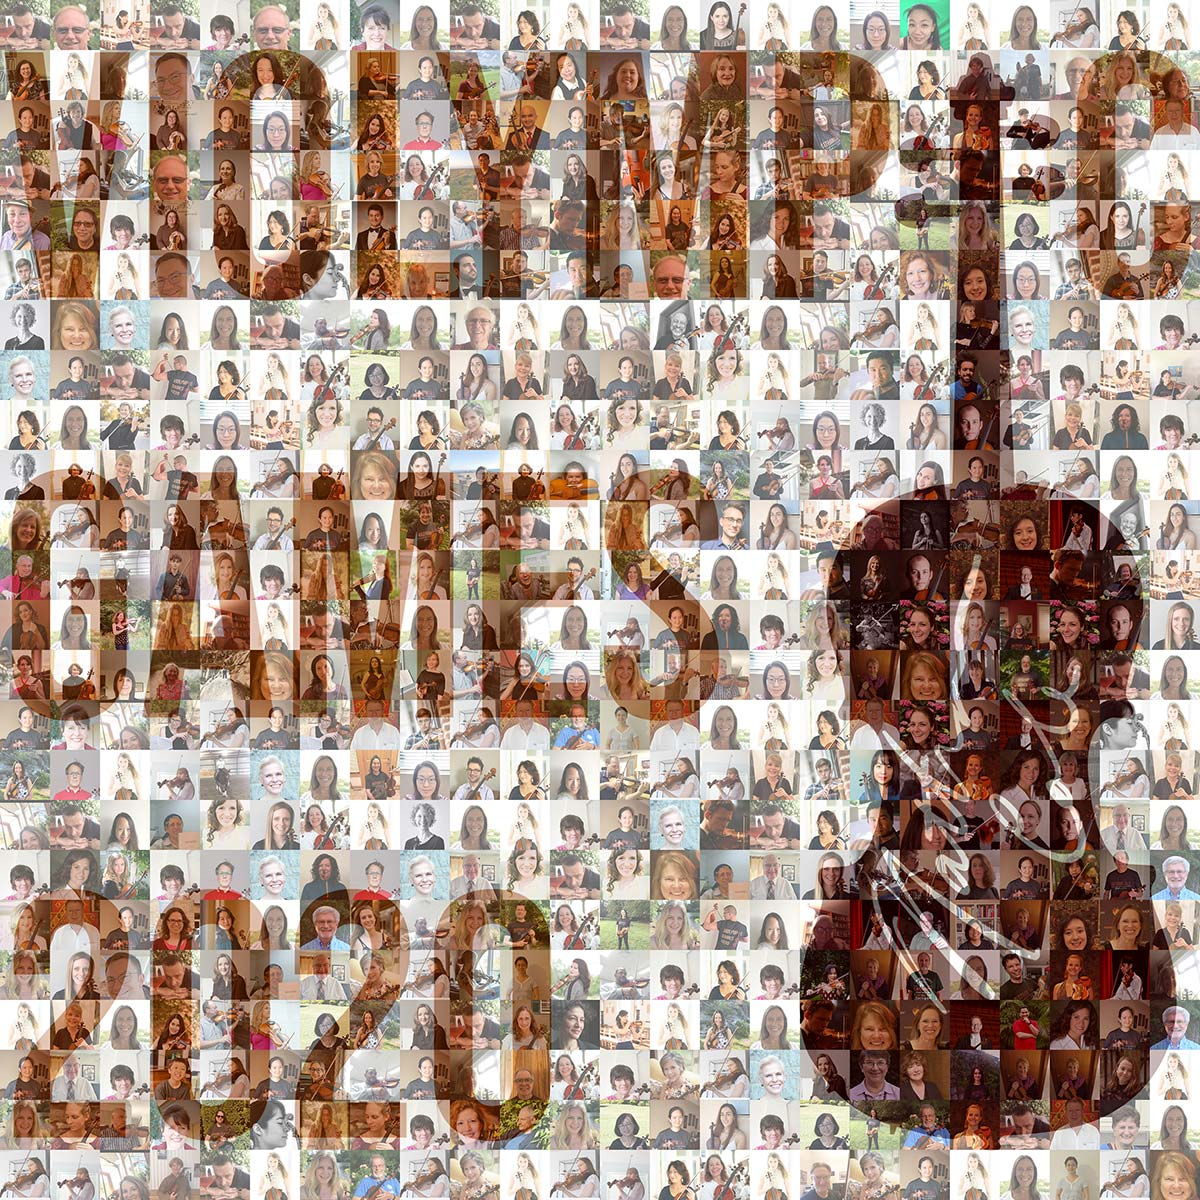 A composite photo made up of violinists faces and a violin promoting the 2020 Violympic Games. | Courtesy of Violympic Games